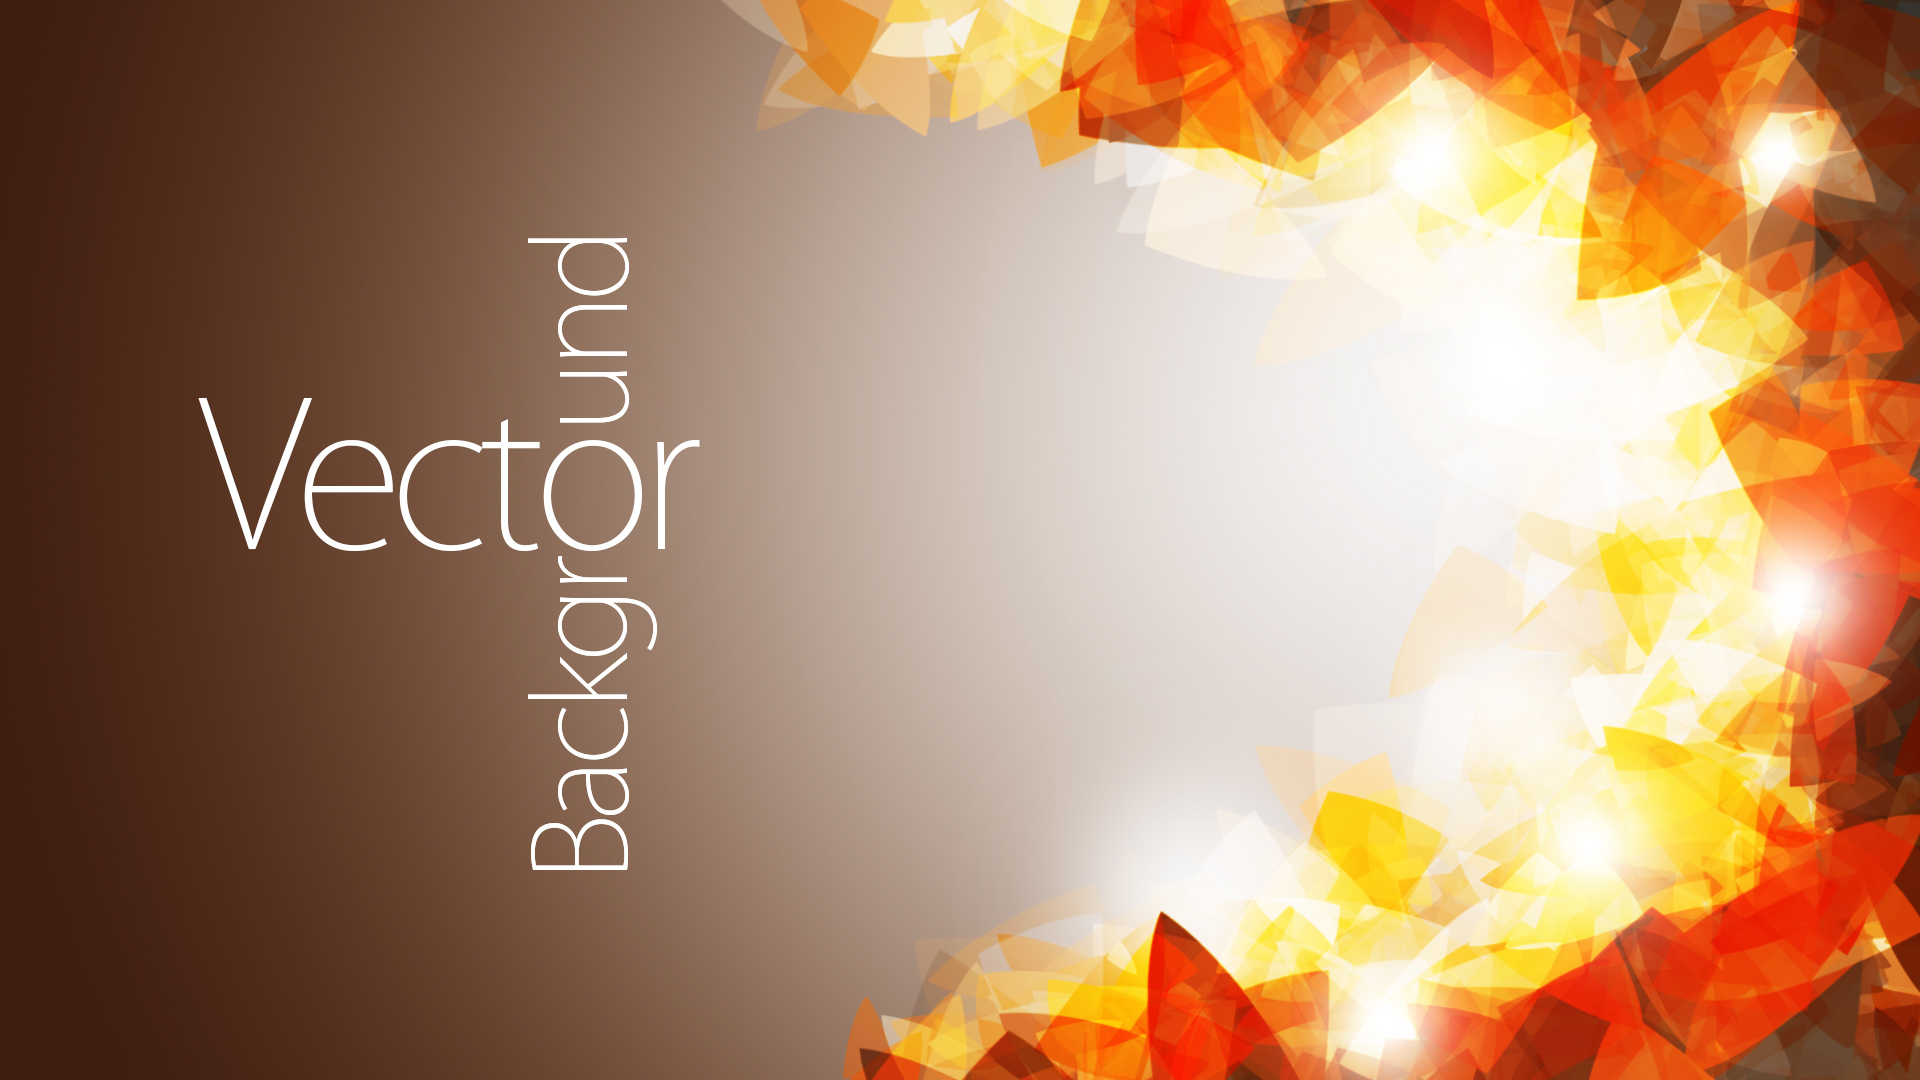 Background for images in photoshop - Create Amazing Vector Background With Photoshop